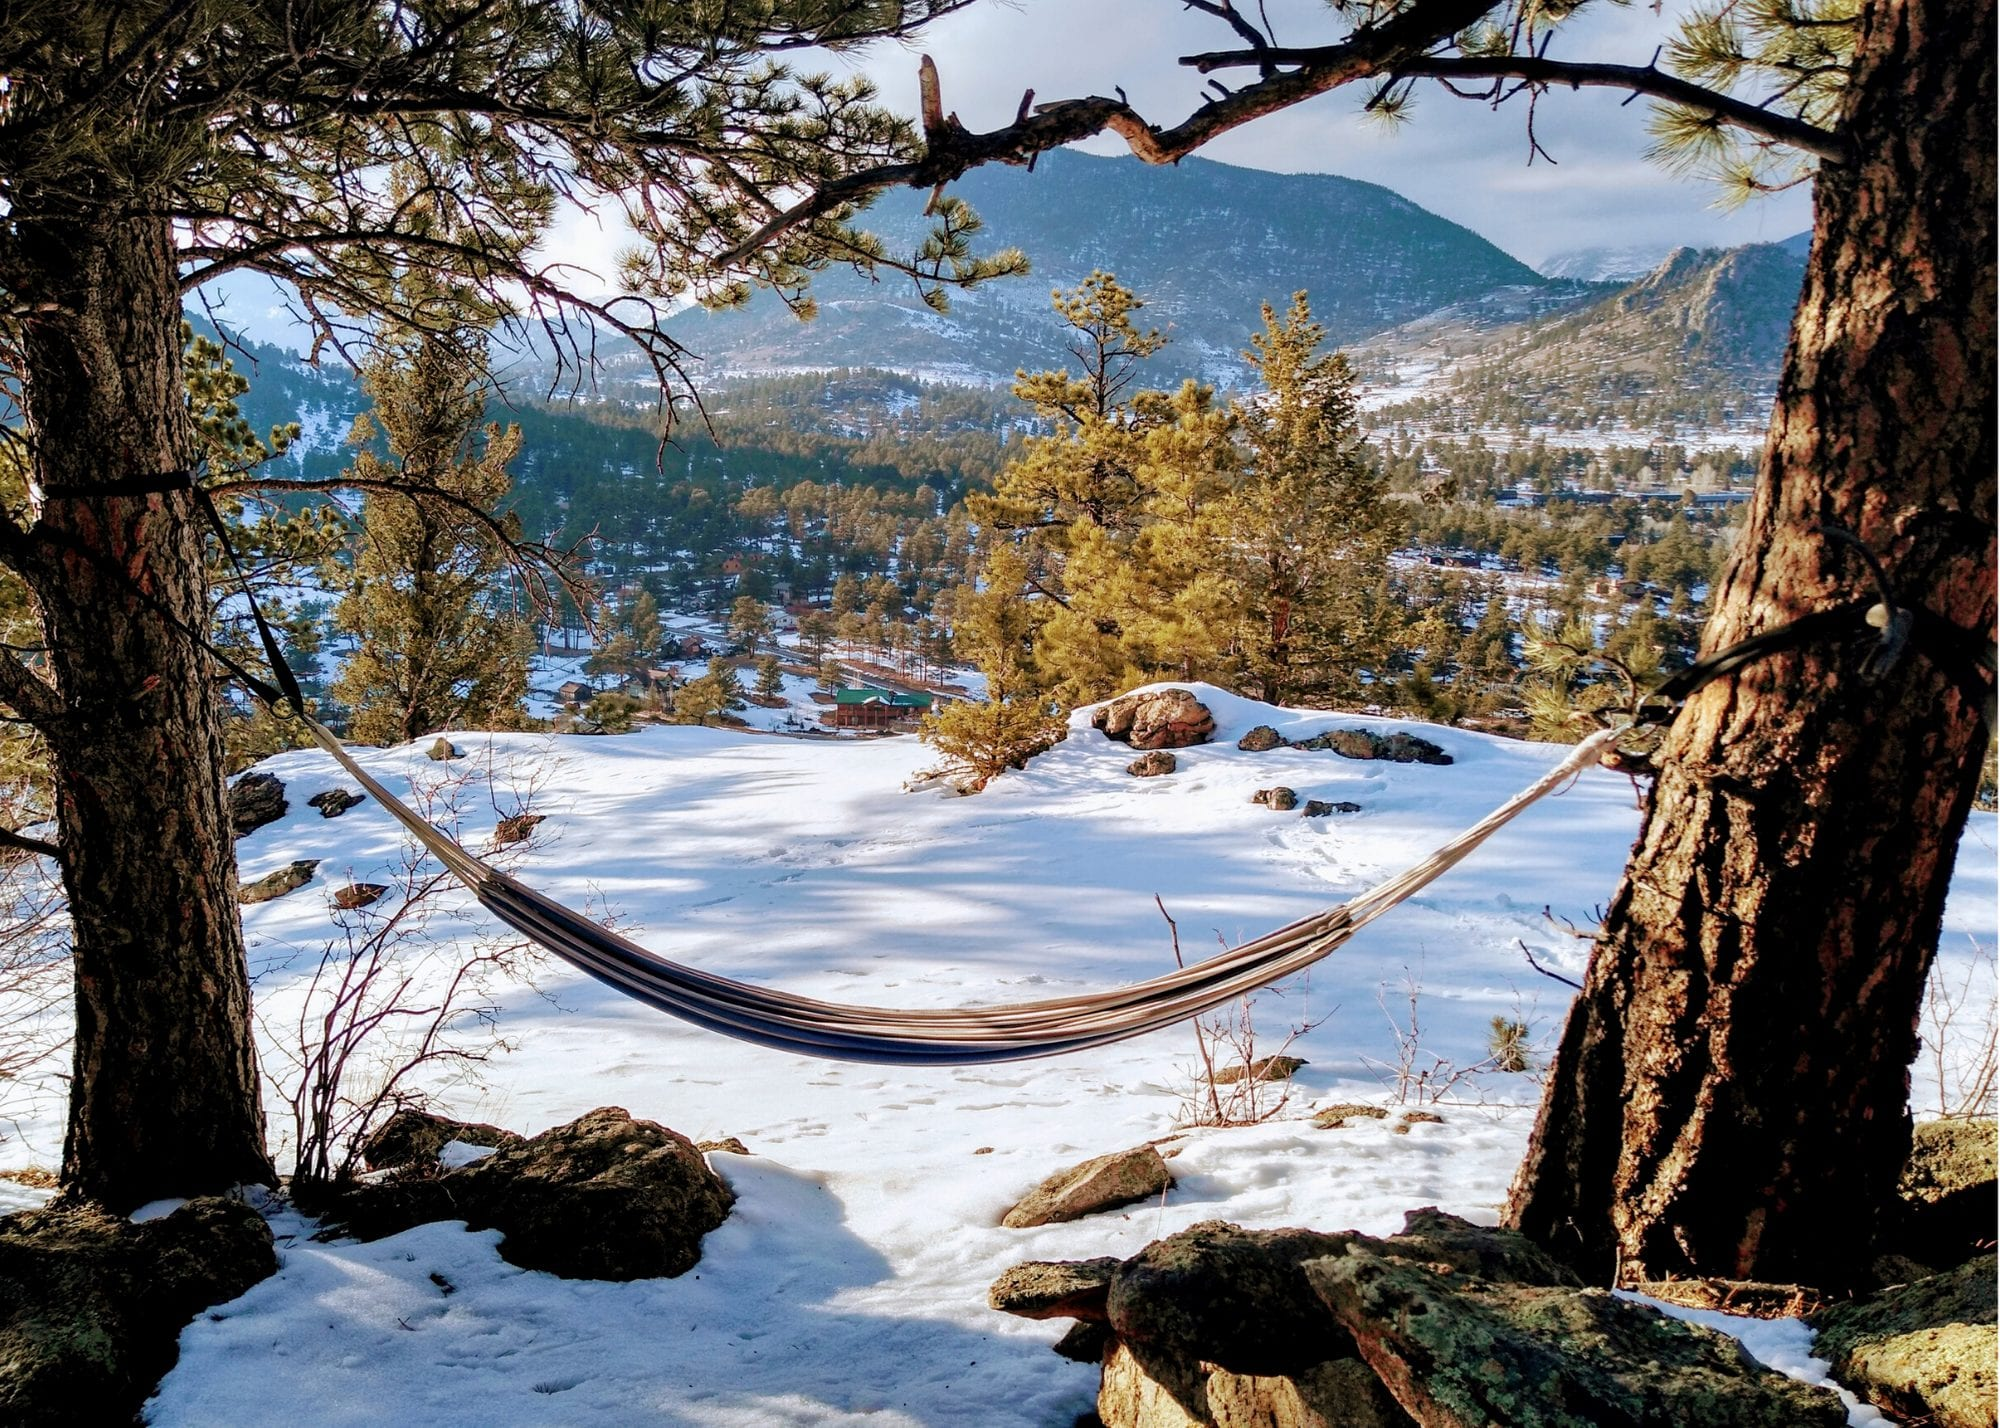 Things to do in Estes Park in winter